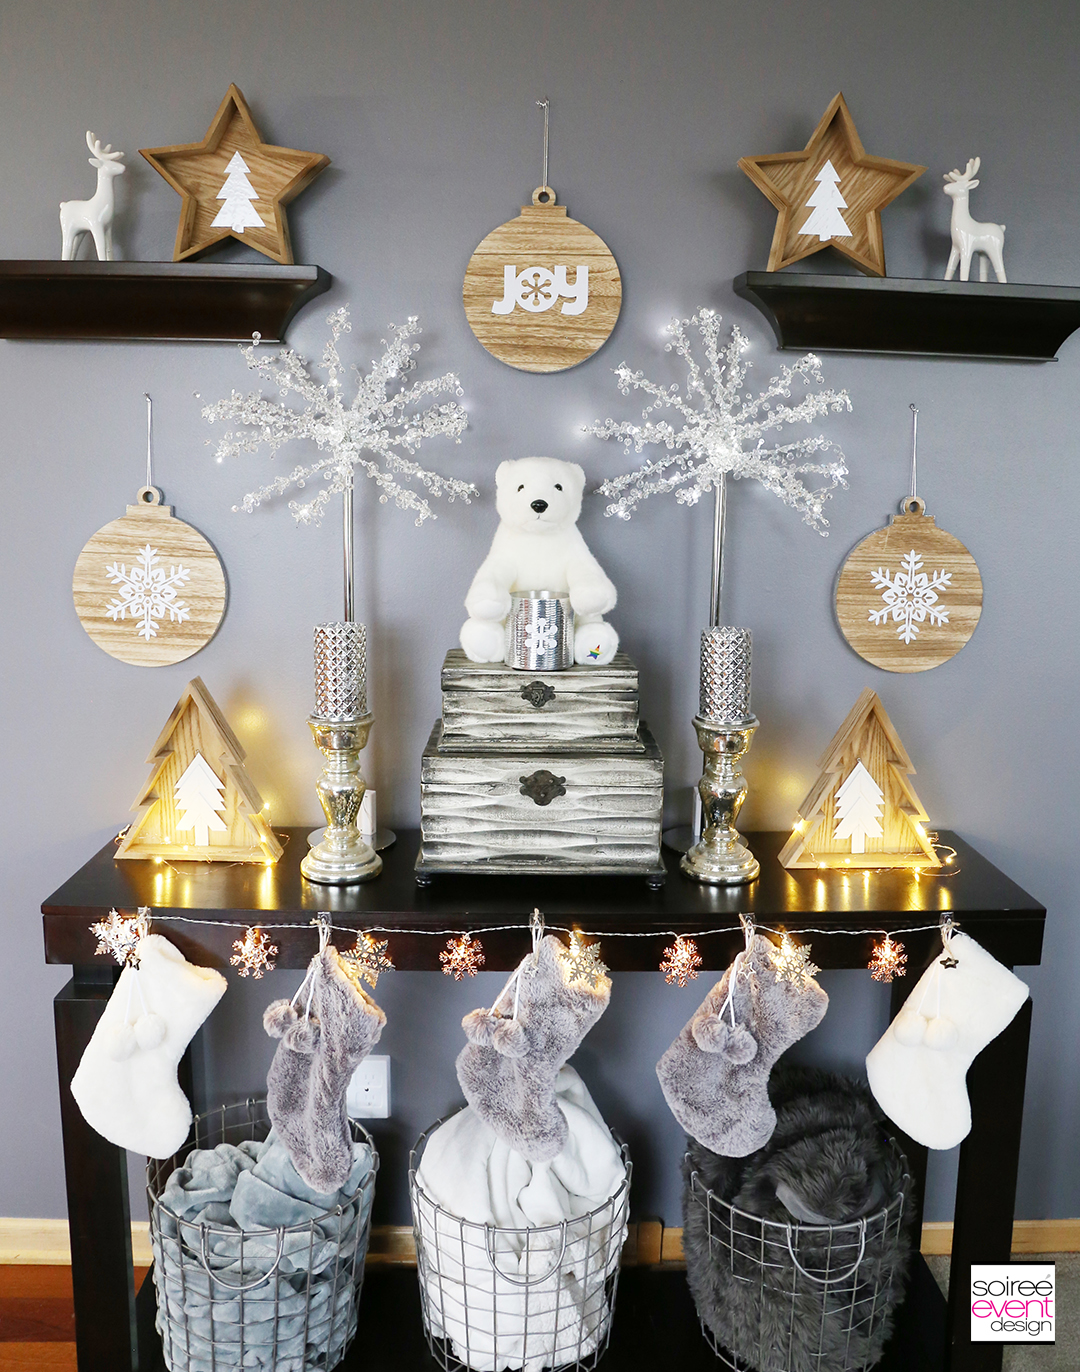 Farmhouse Holiday Decorations - Stocking Mantel Table